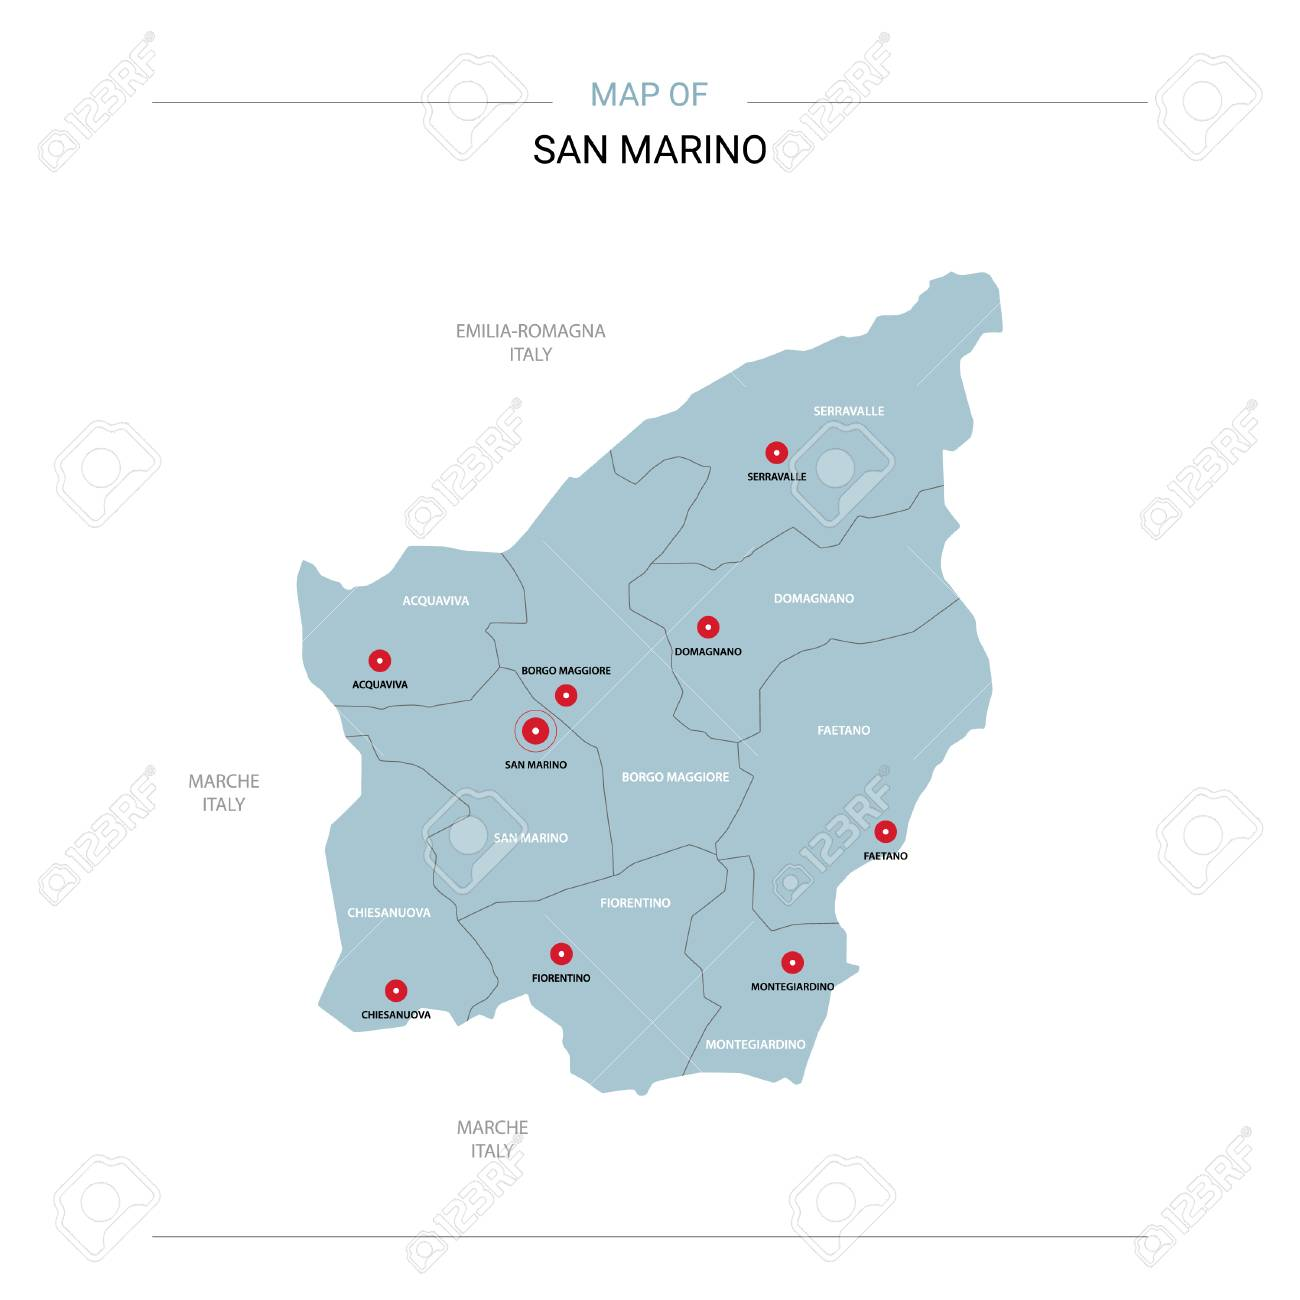 San Marino Vector Map Editable Template With Regions Cities